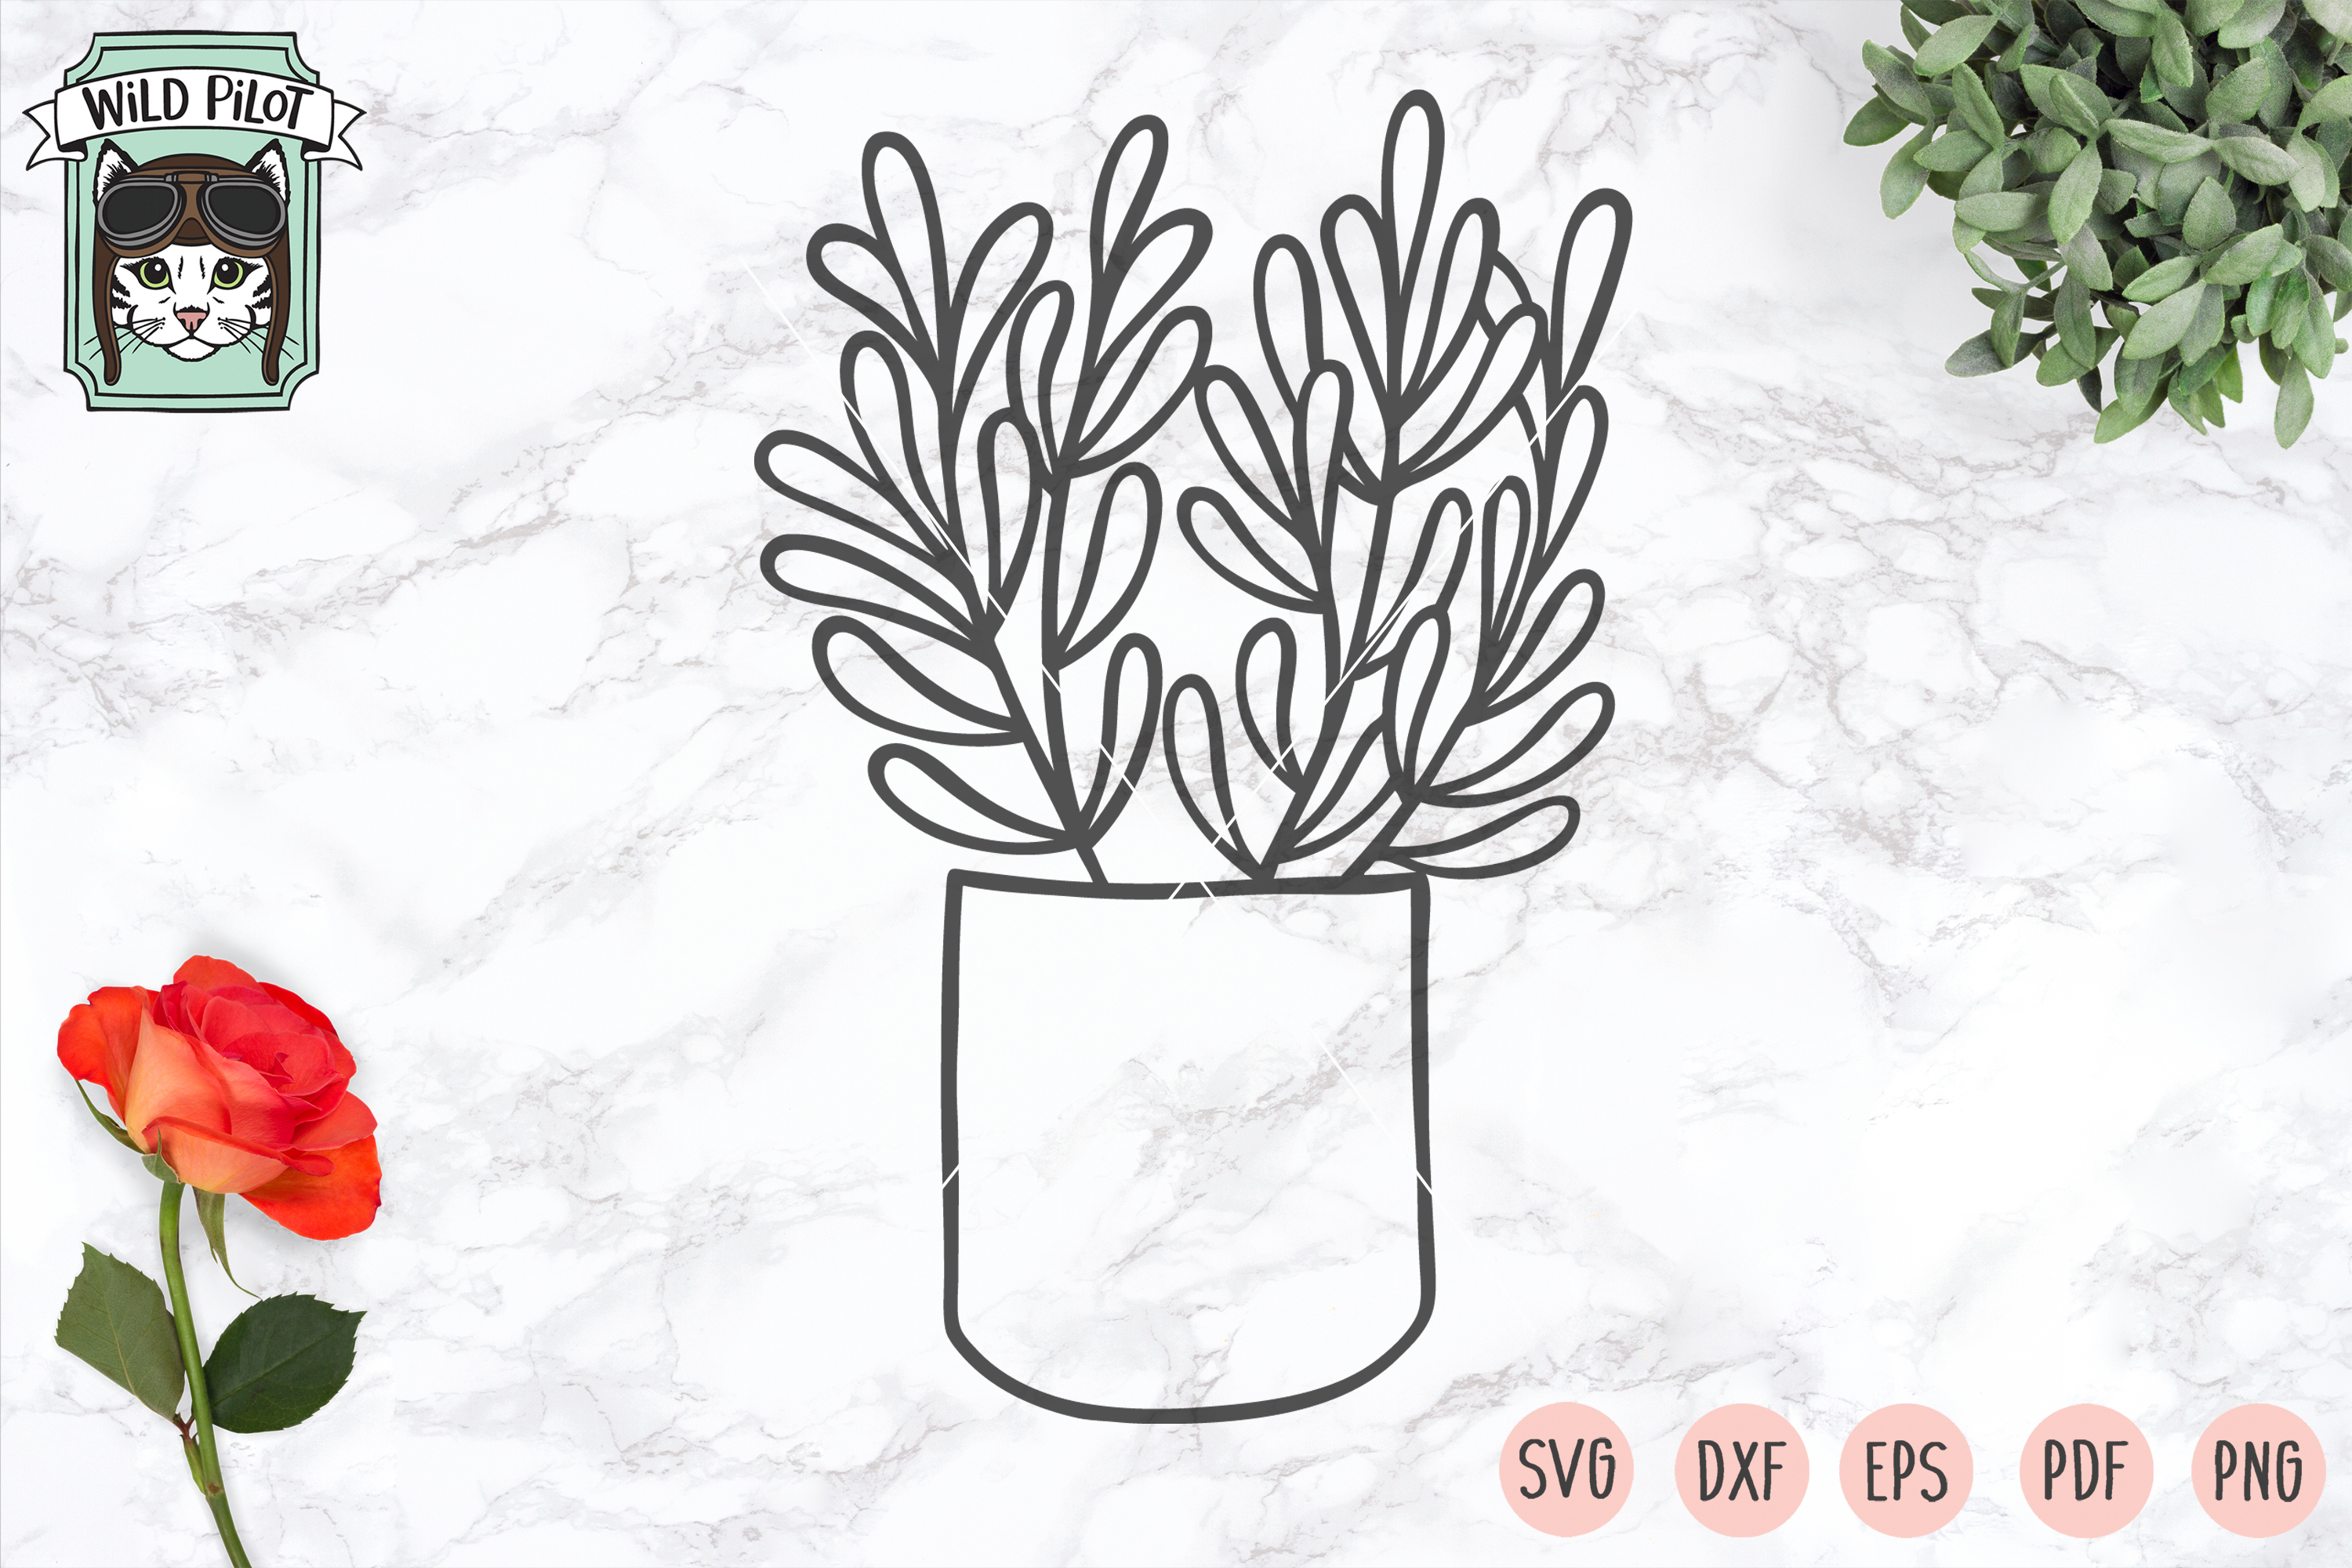 Plants SVG files, Potted Plants cut files, Planters, Garden example image 3